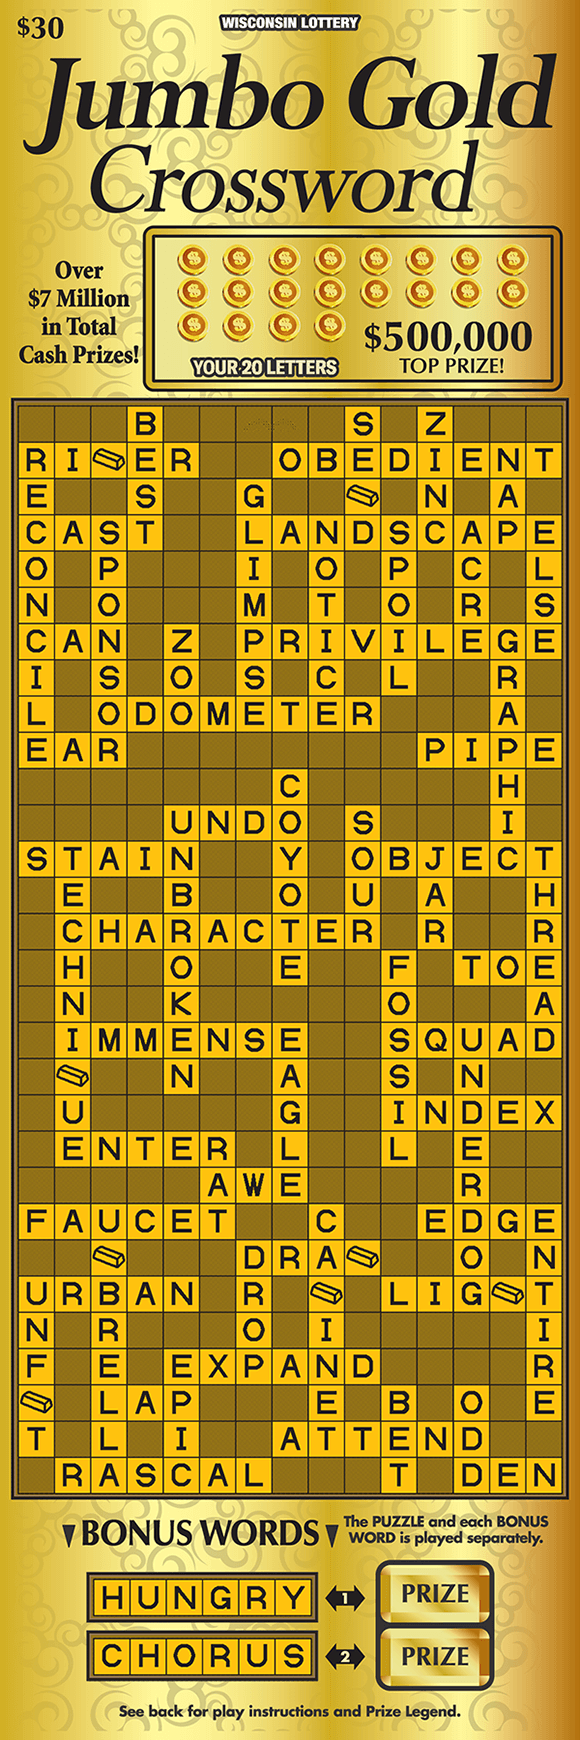 image of oversized crossword ticket with a solid gold background with a lighter gold crossword play area on scratch ticket from wisconsin lottery